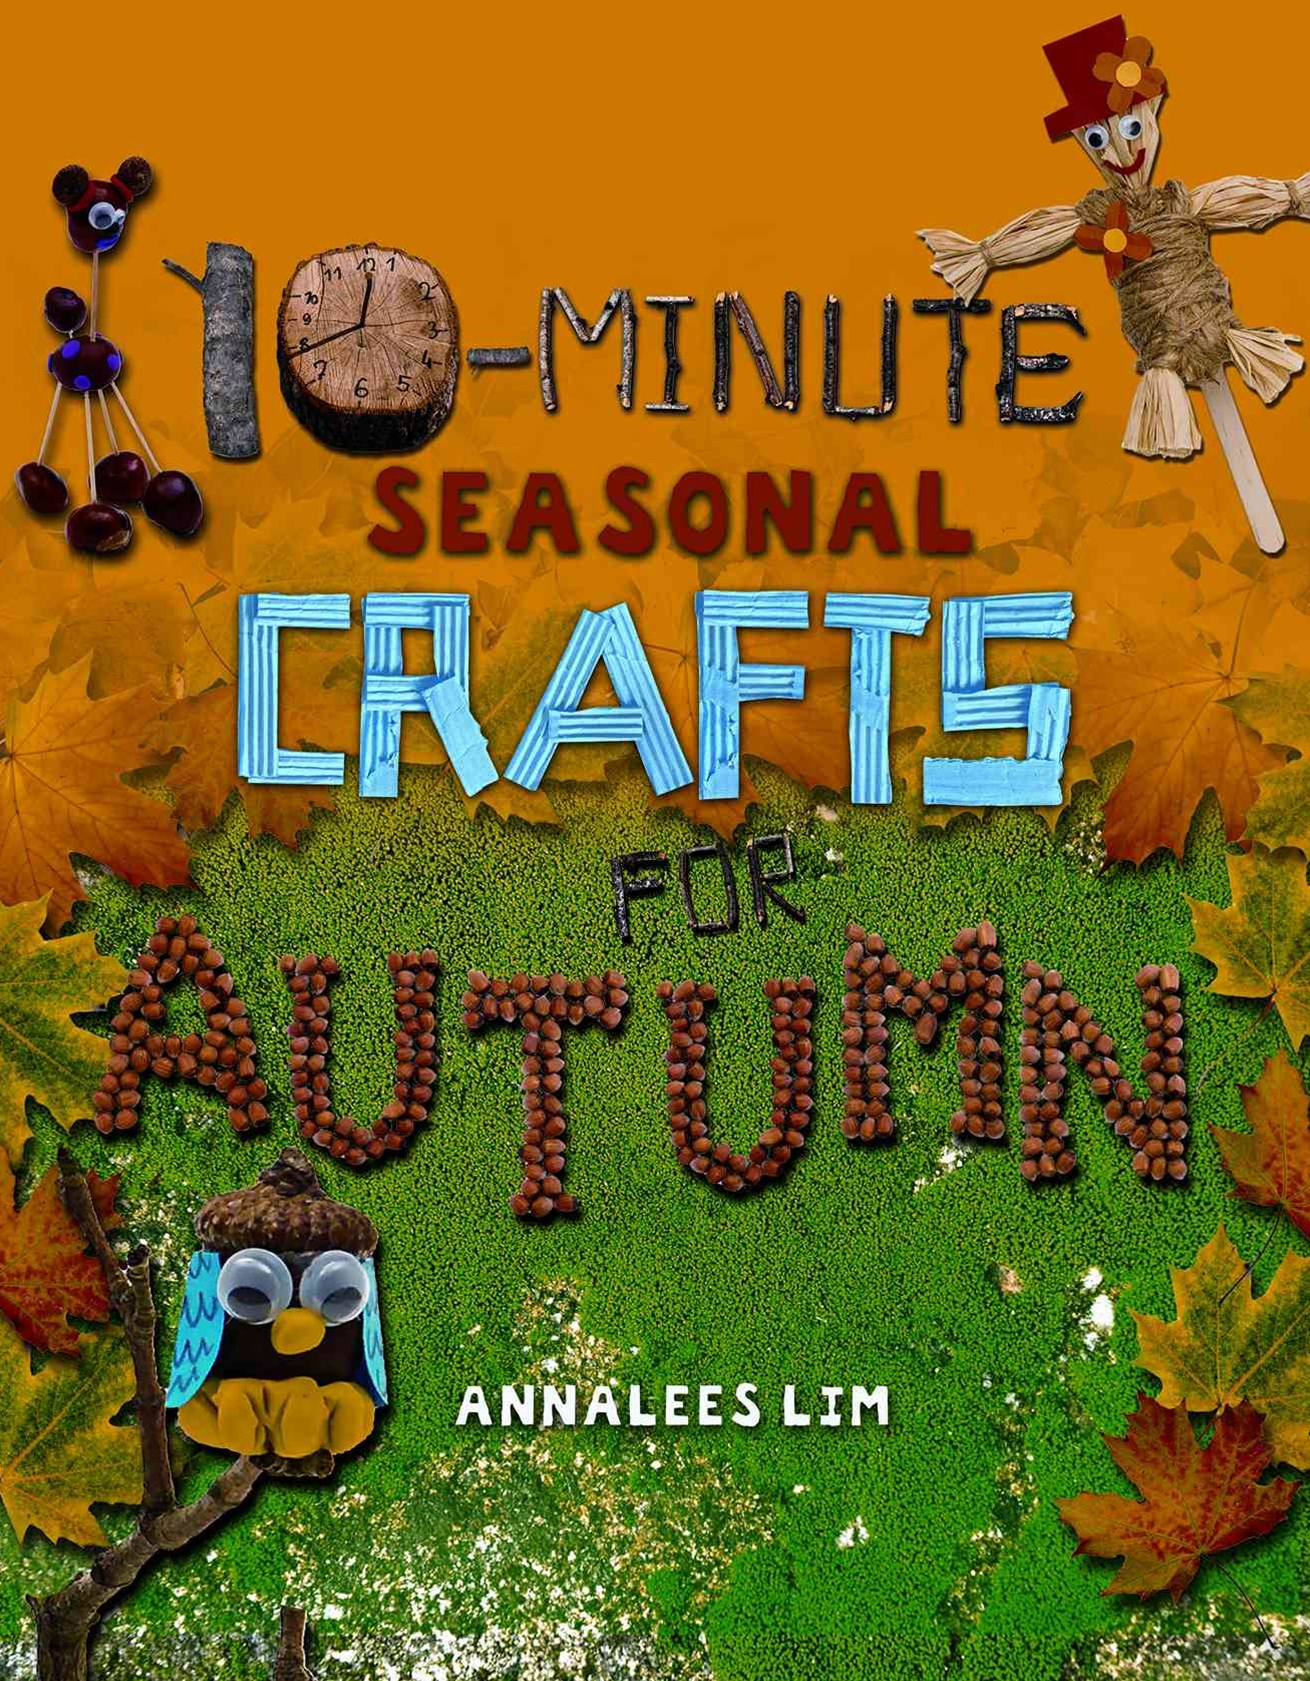 10-Minute Seasonal Crafts for Autumn